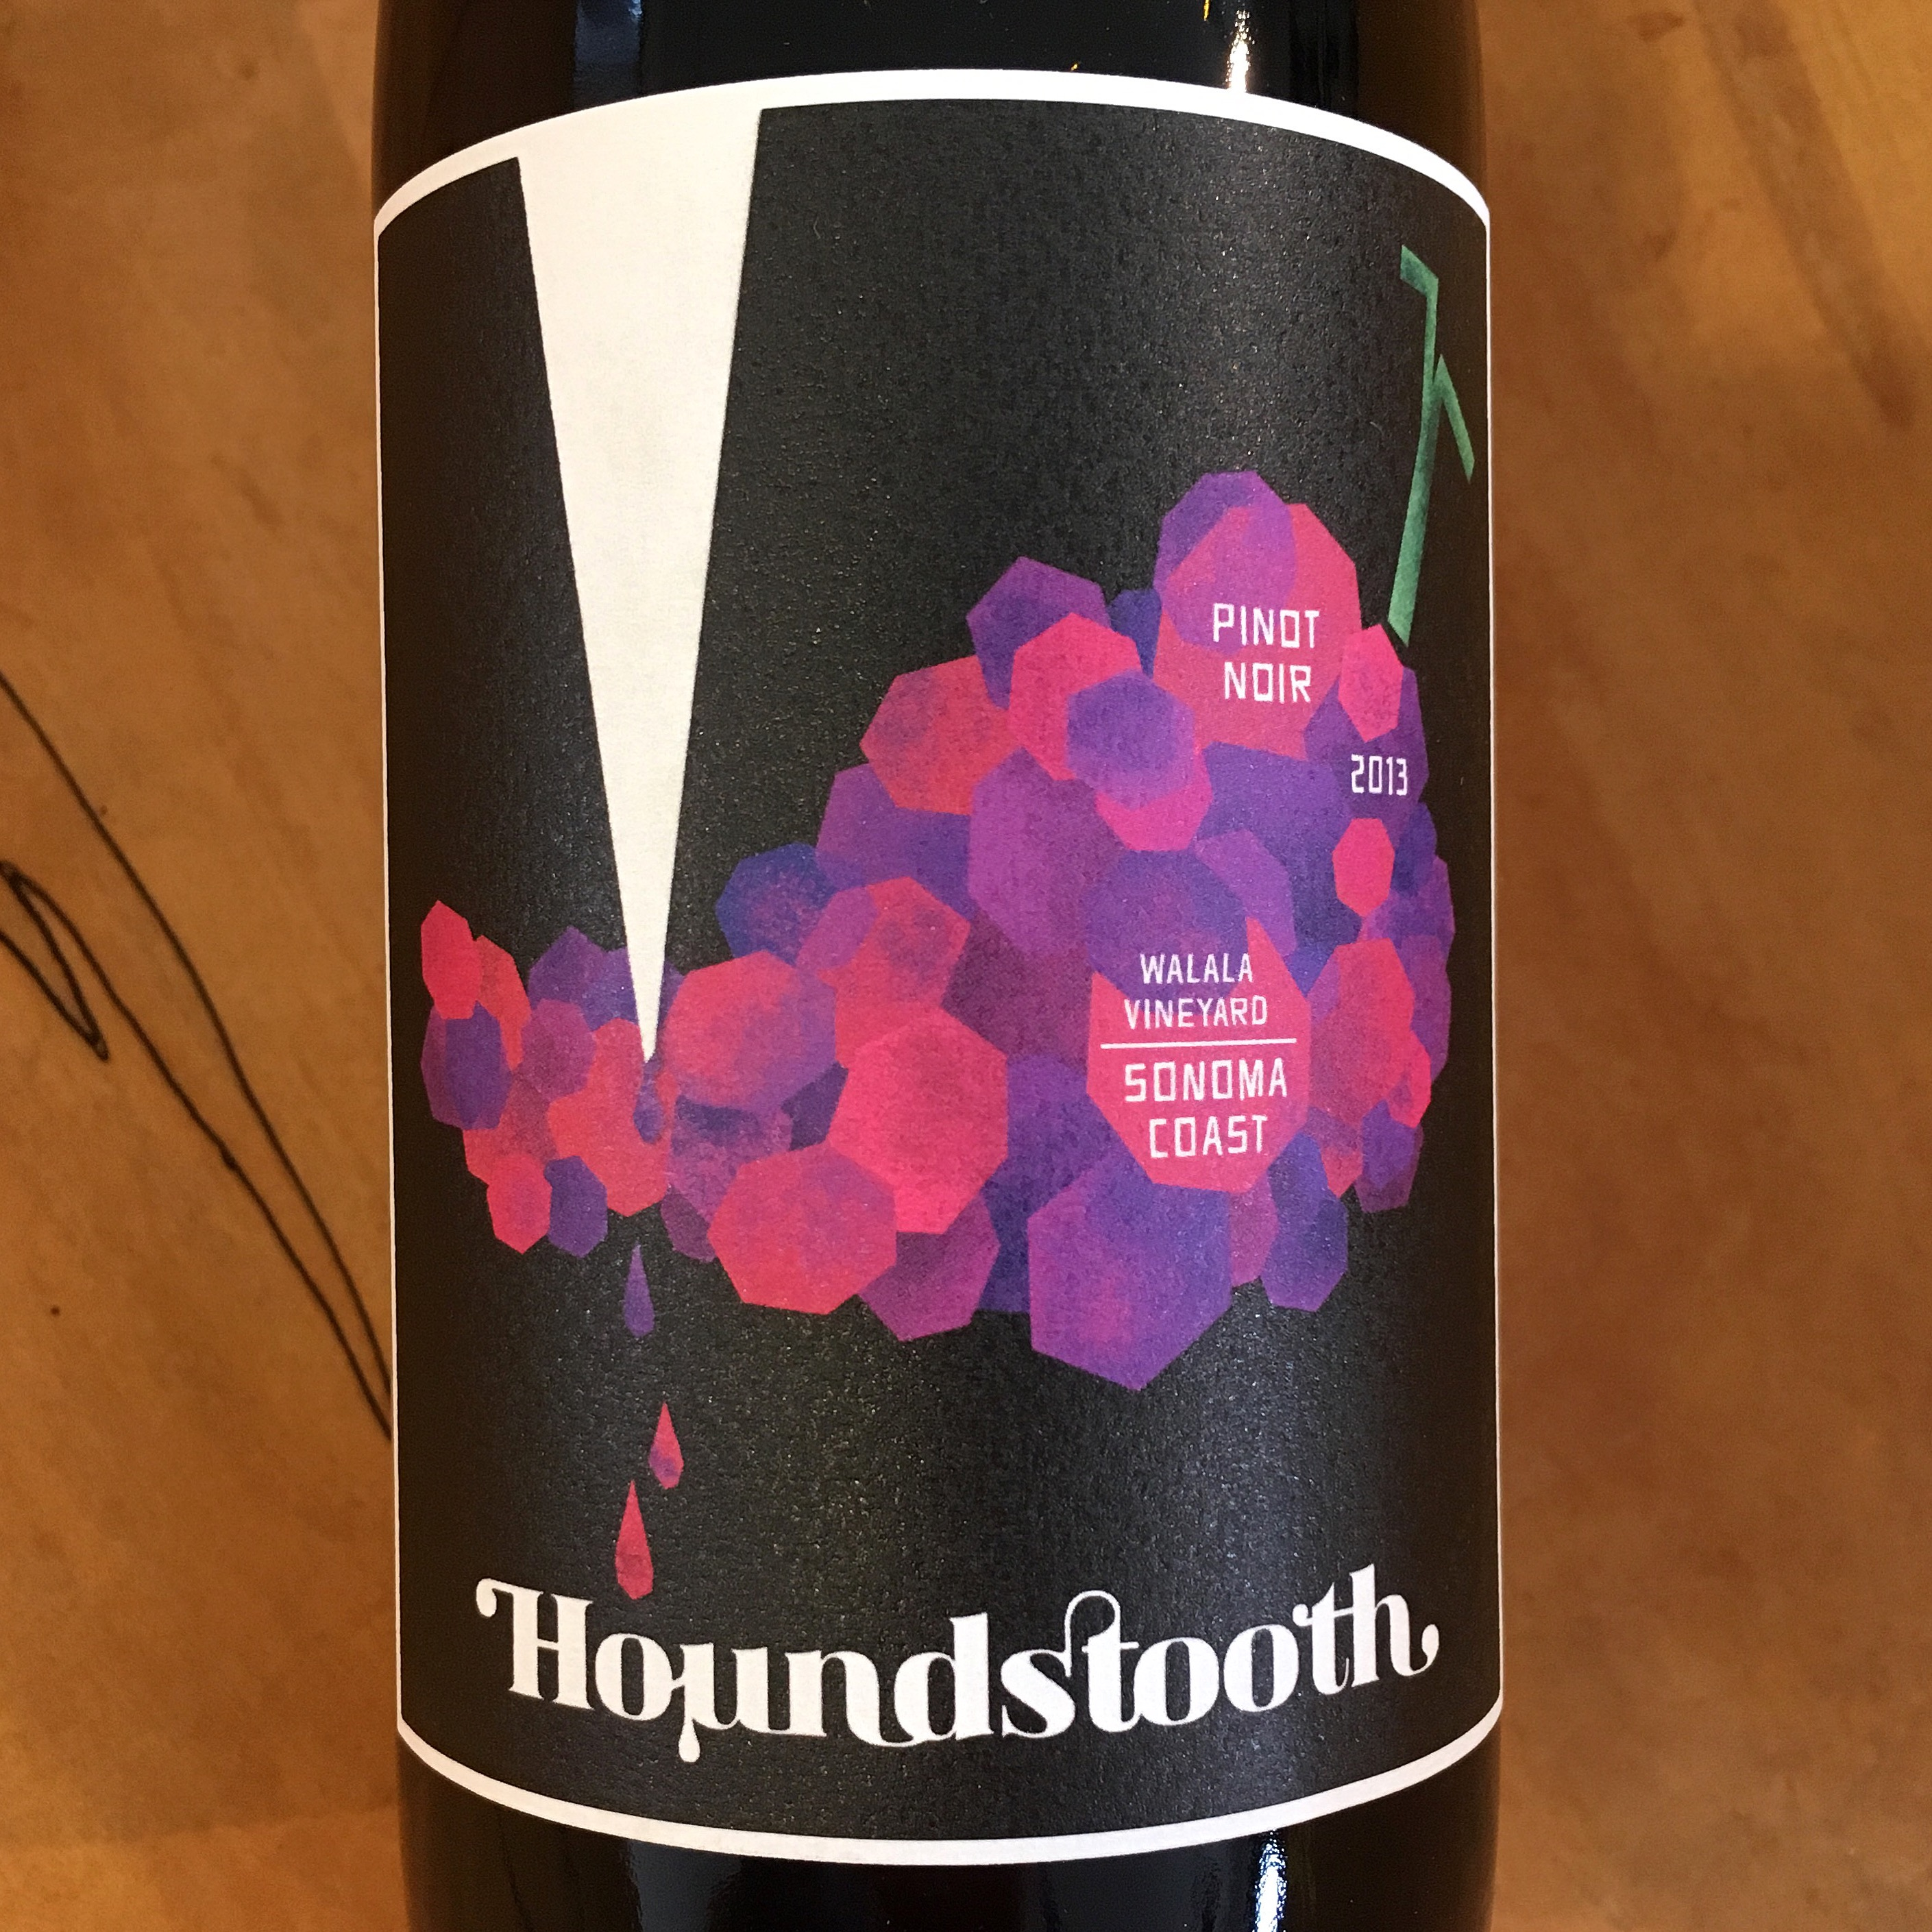 Houndstooth 'Walala Vineyard' Pinot Noir 2013  Sonoma Coast - K. Laz Wine Collection